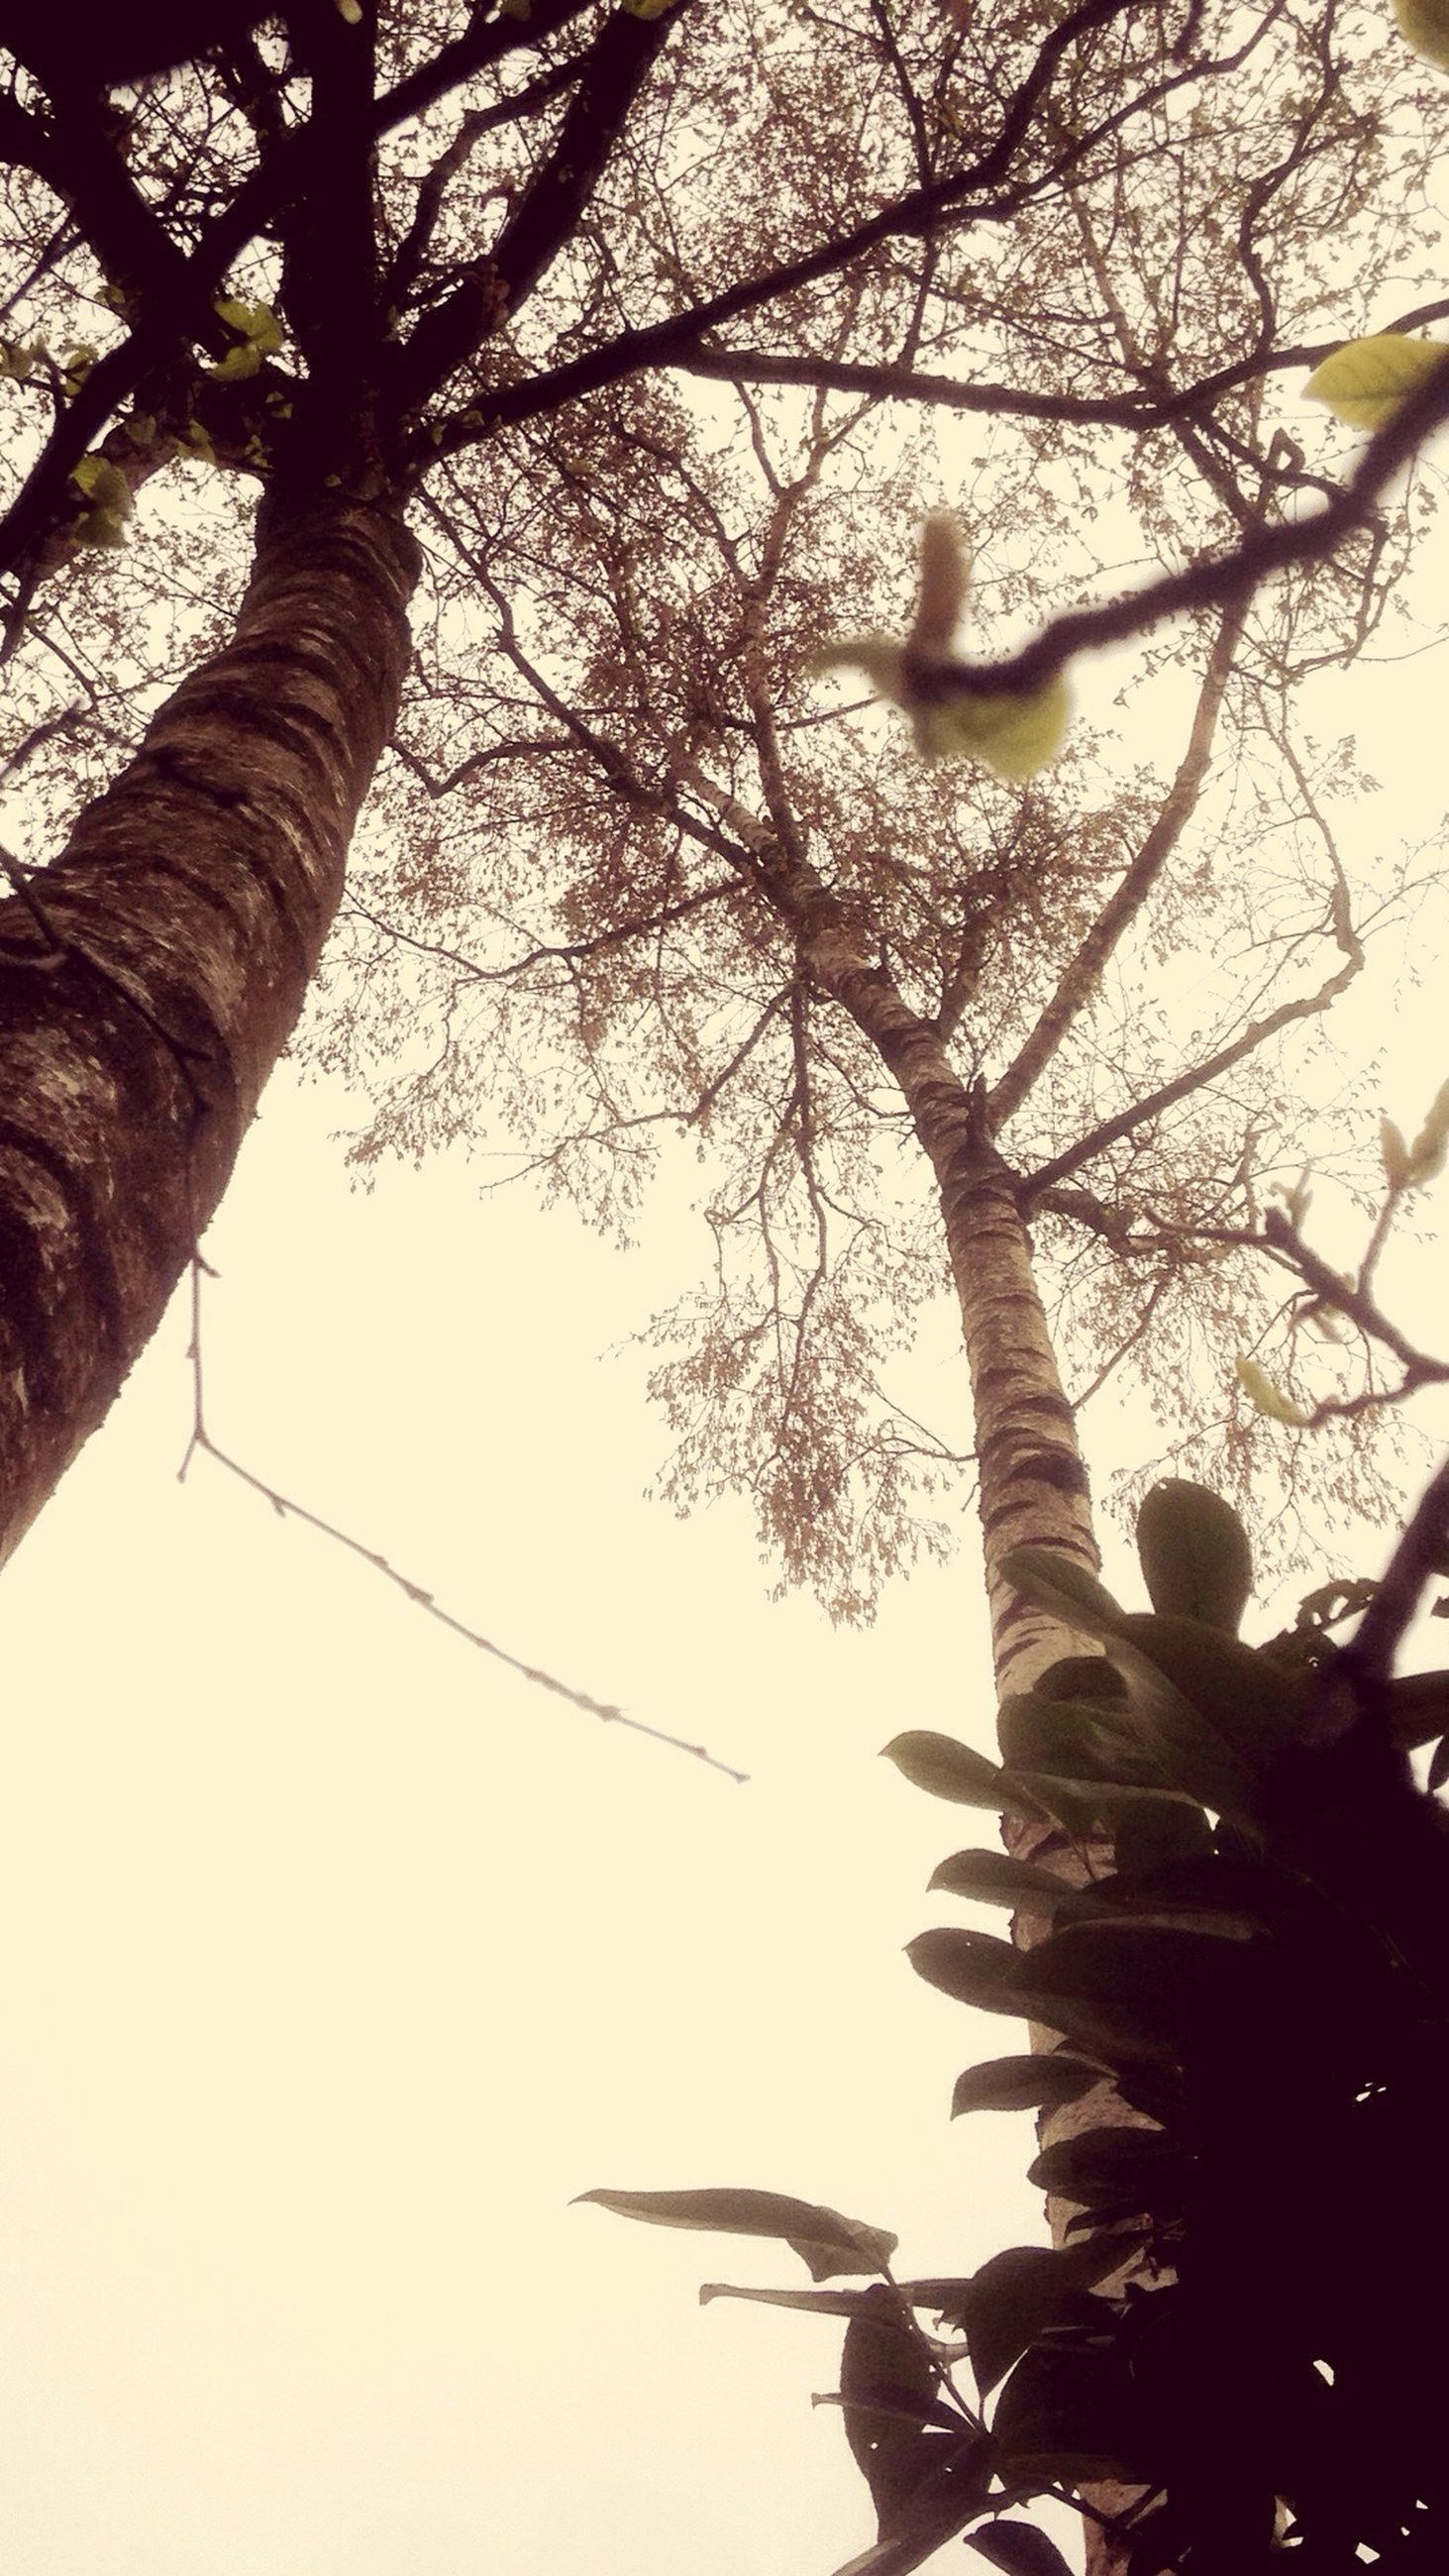 low angle view, tree, branch, nature, growth, sky, no people, outdoors, beauty in nature, day, close-up